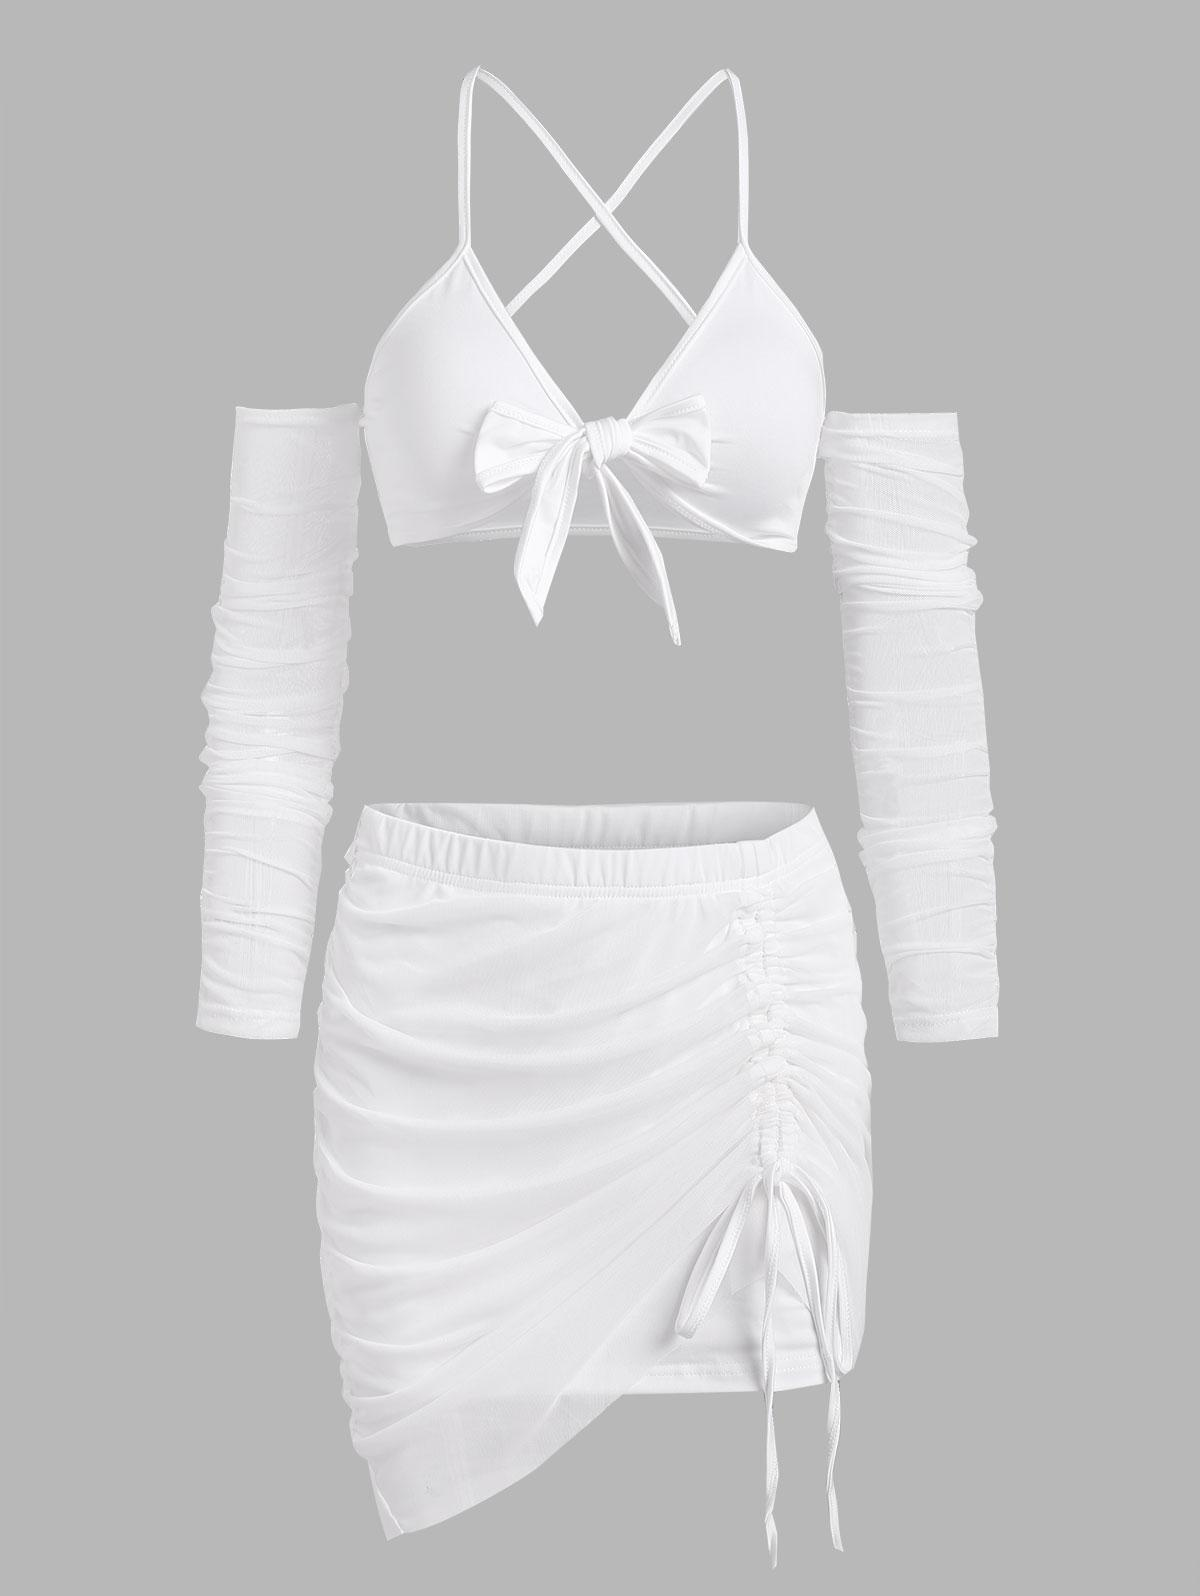 Tie Front Mesh String Cutout Cinched Skirt Set